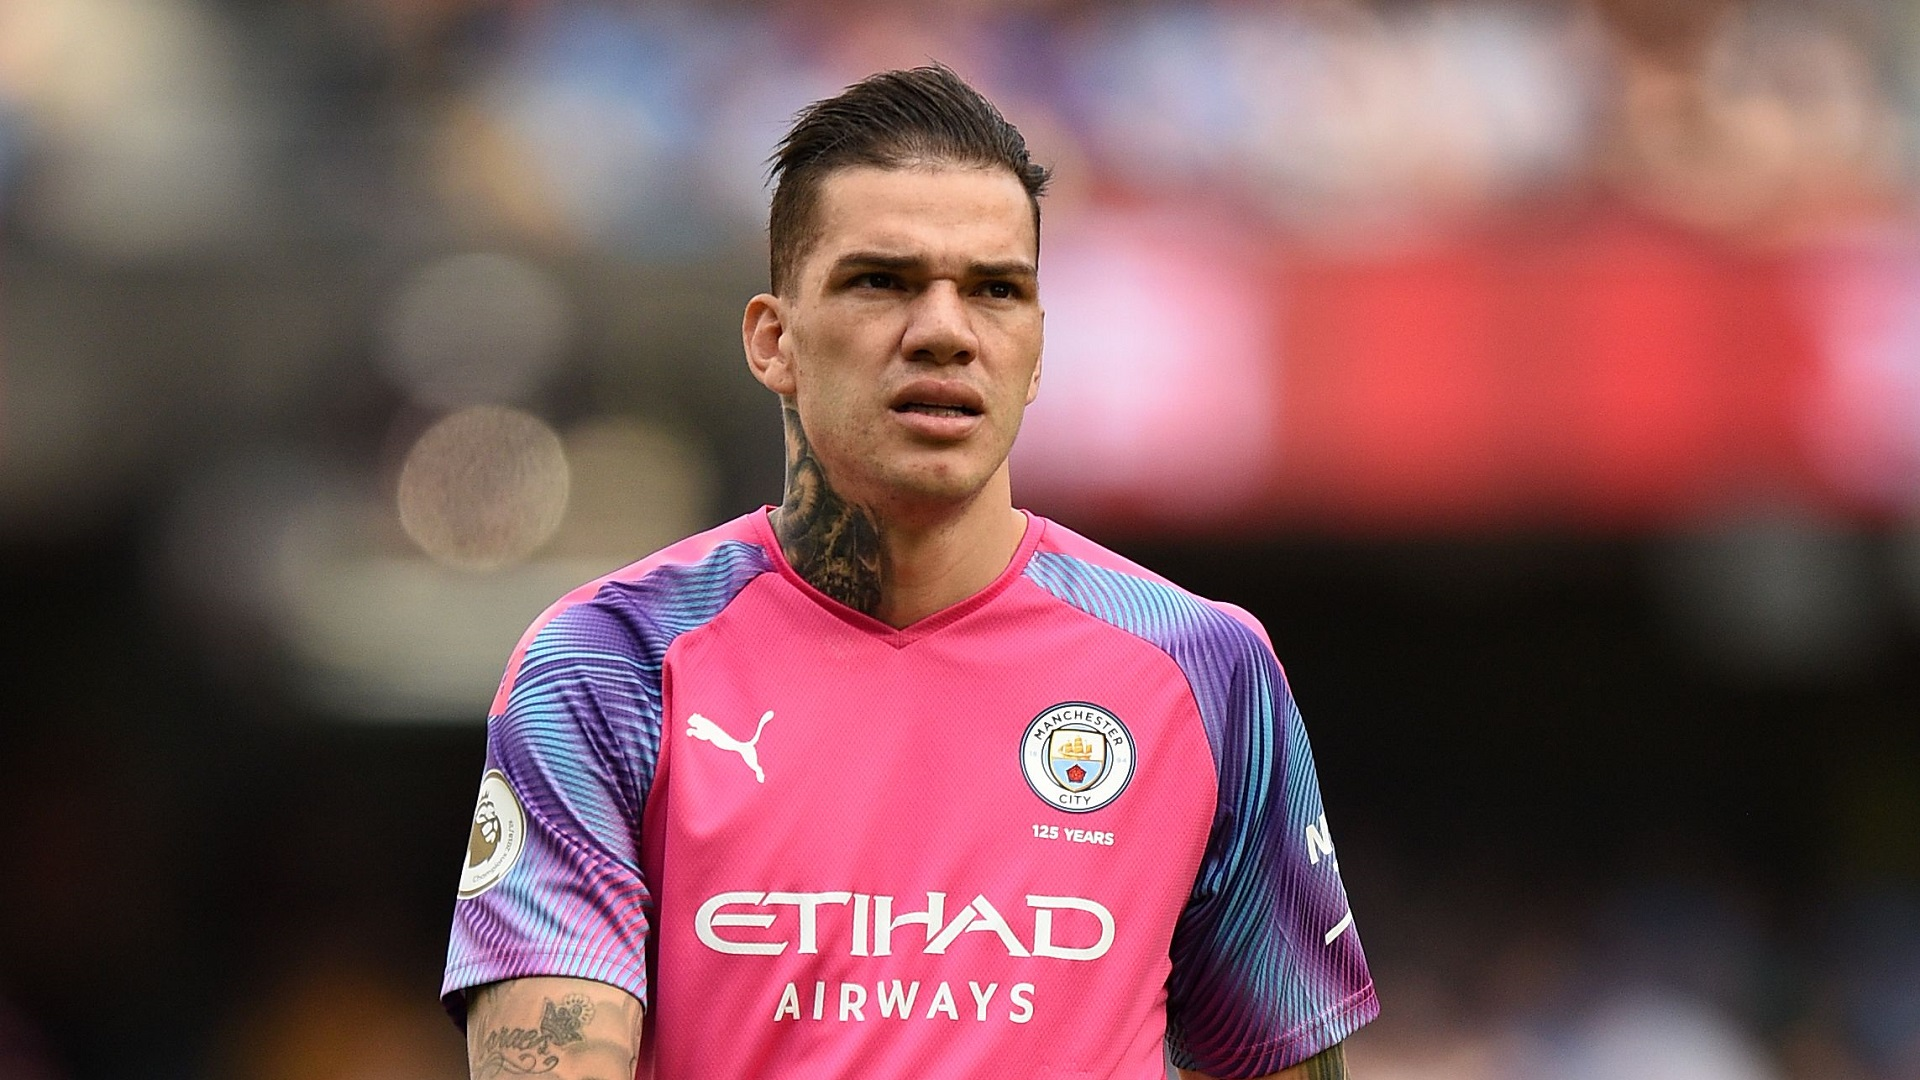 Man City goalkeeper Ederson helping Roebuck become England's No.1